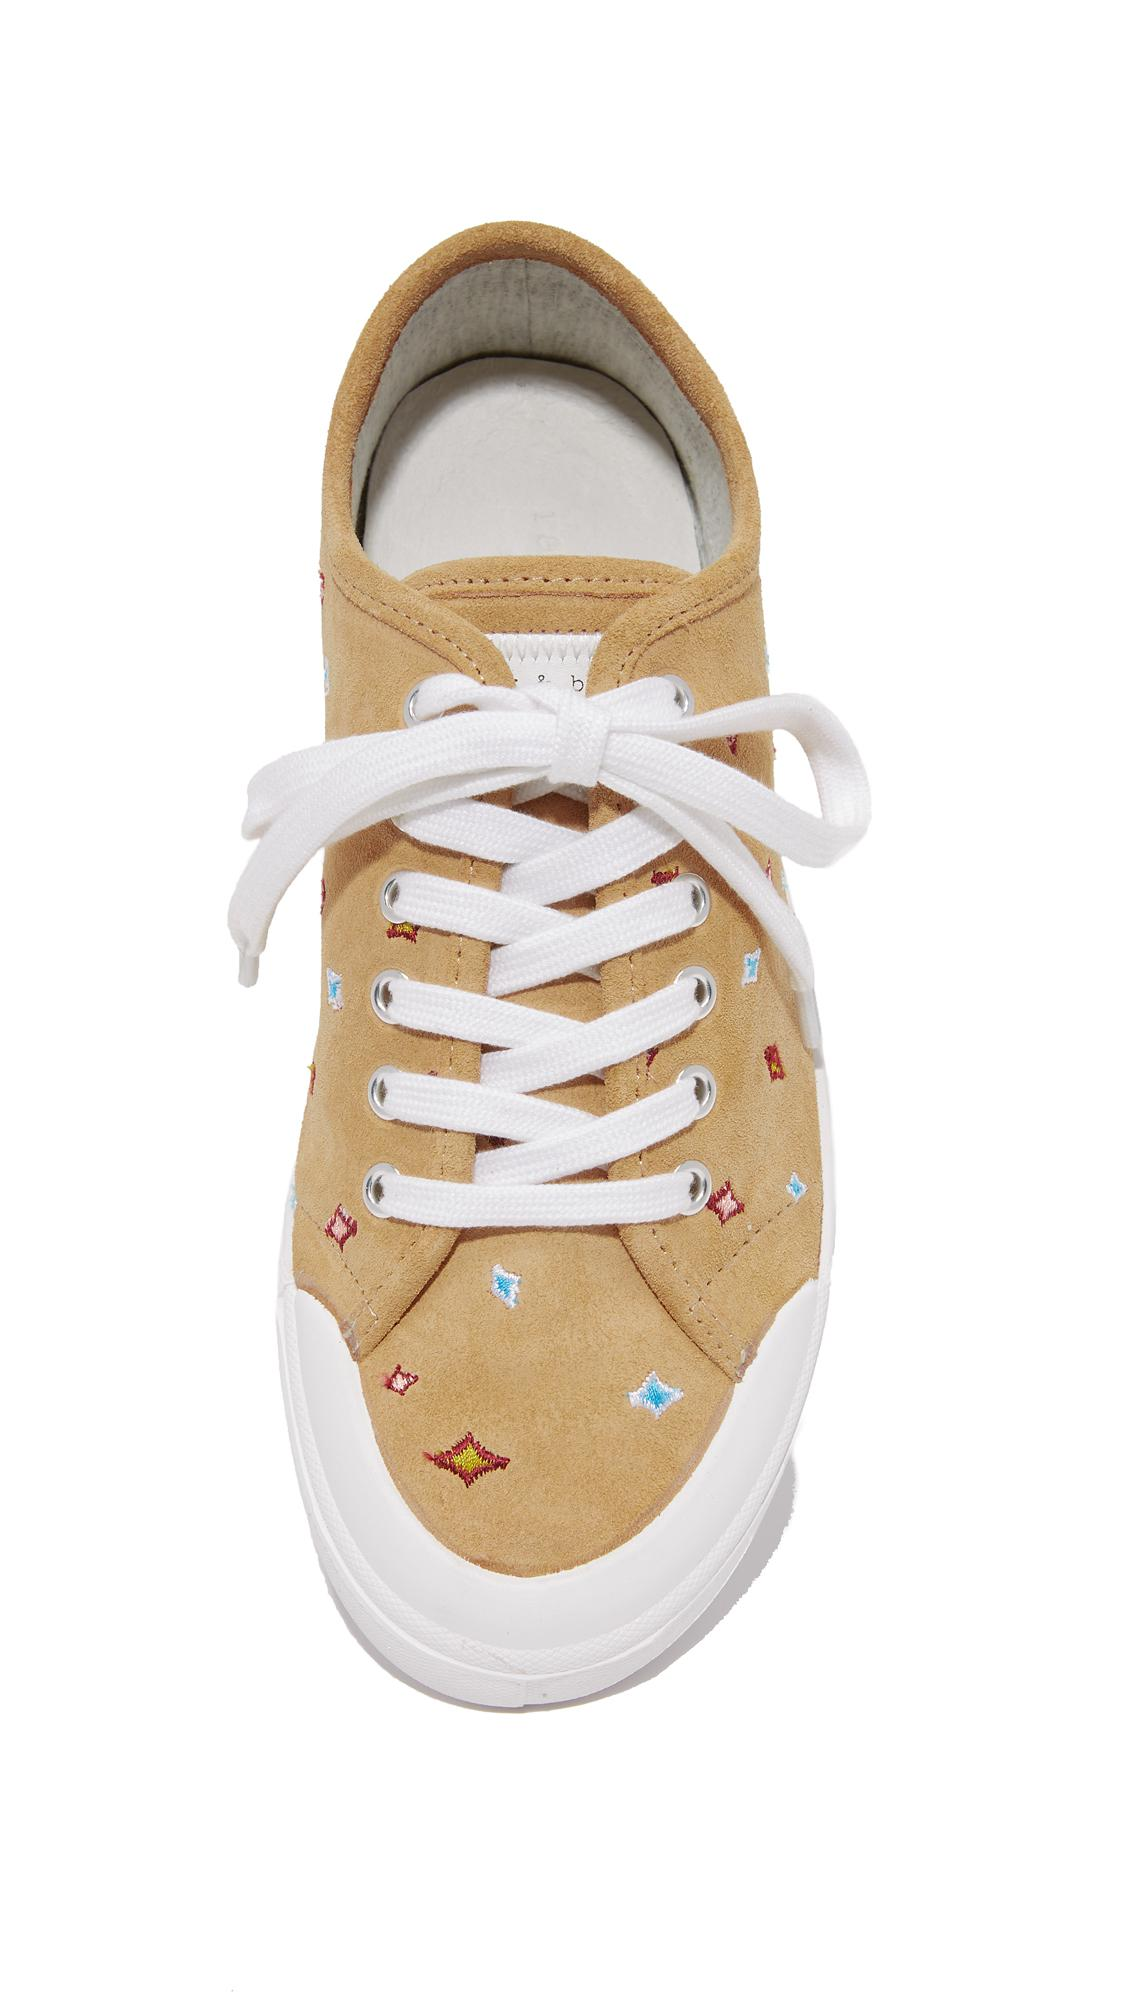 Rag & Bone Leather Standard Issue Lace Up Sneakers